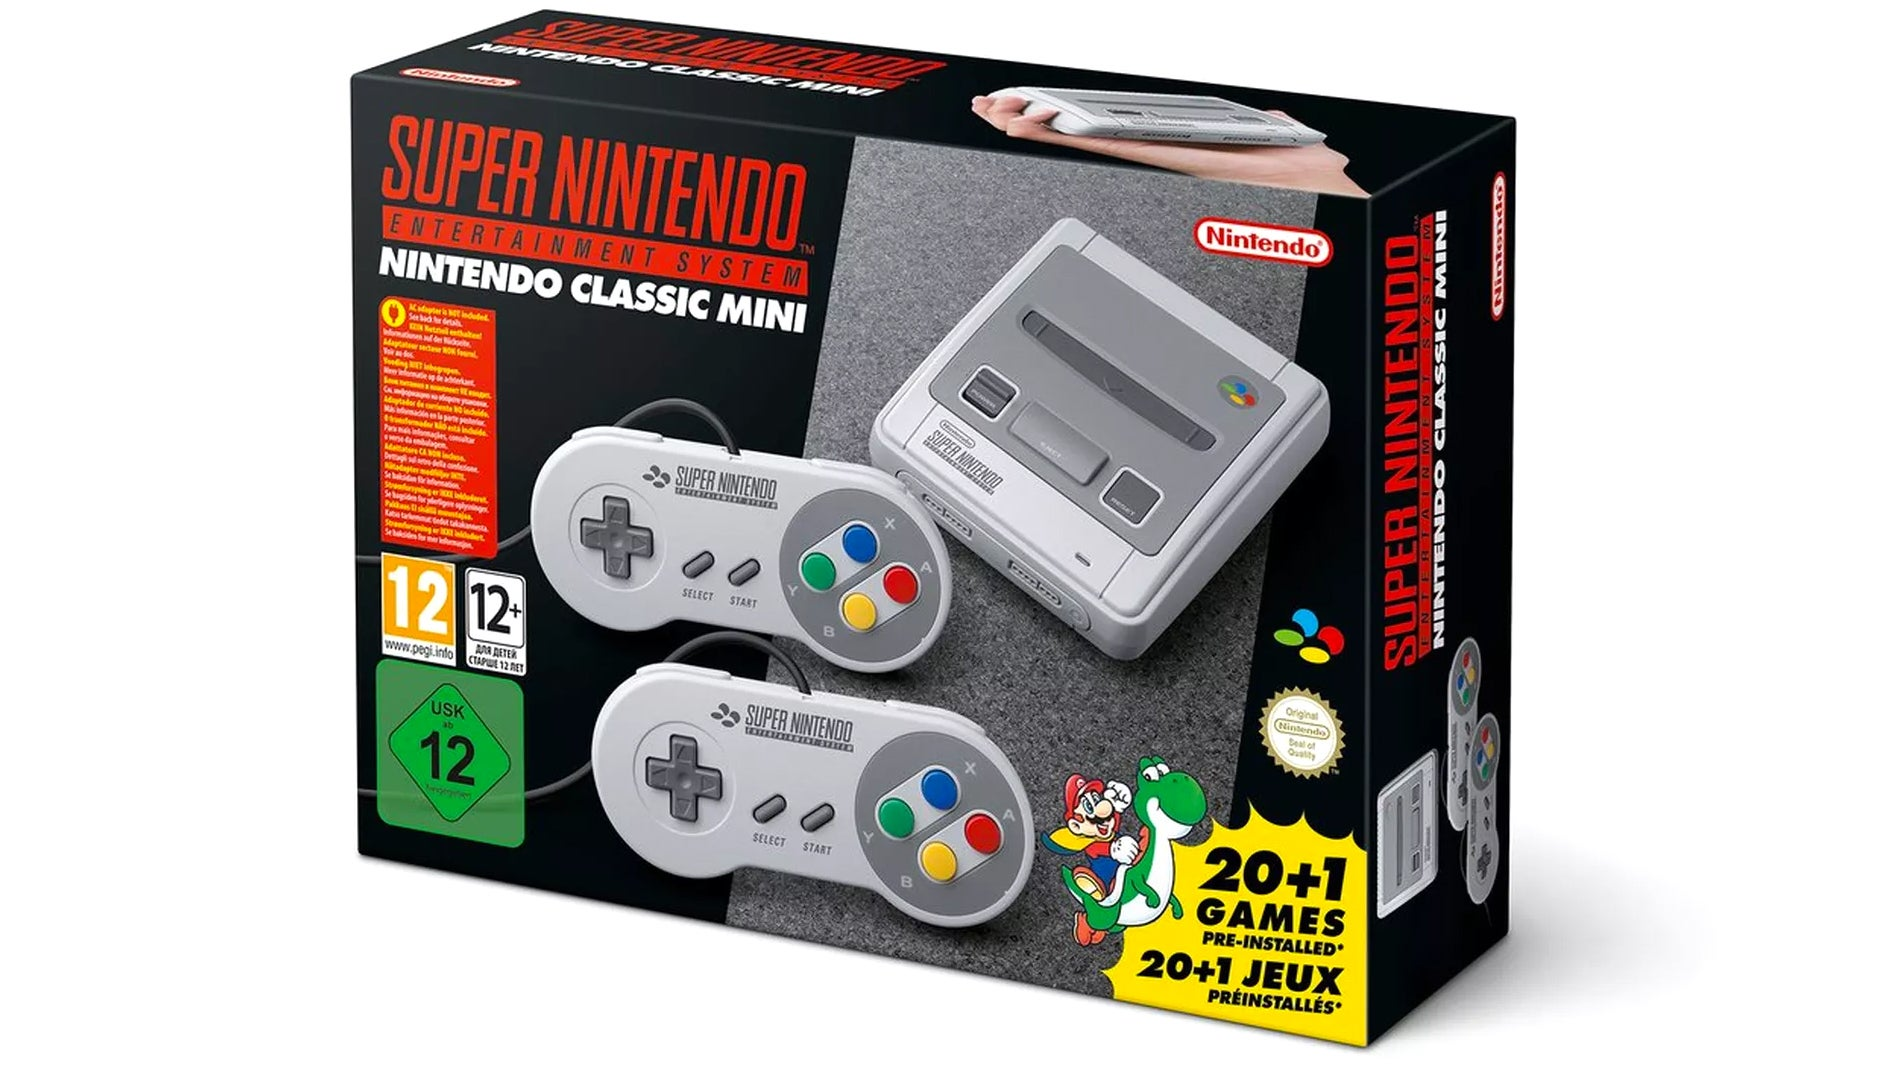 The SNES Classic Will Be Available On September 29th With 21 Games